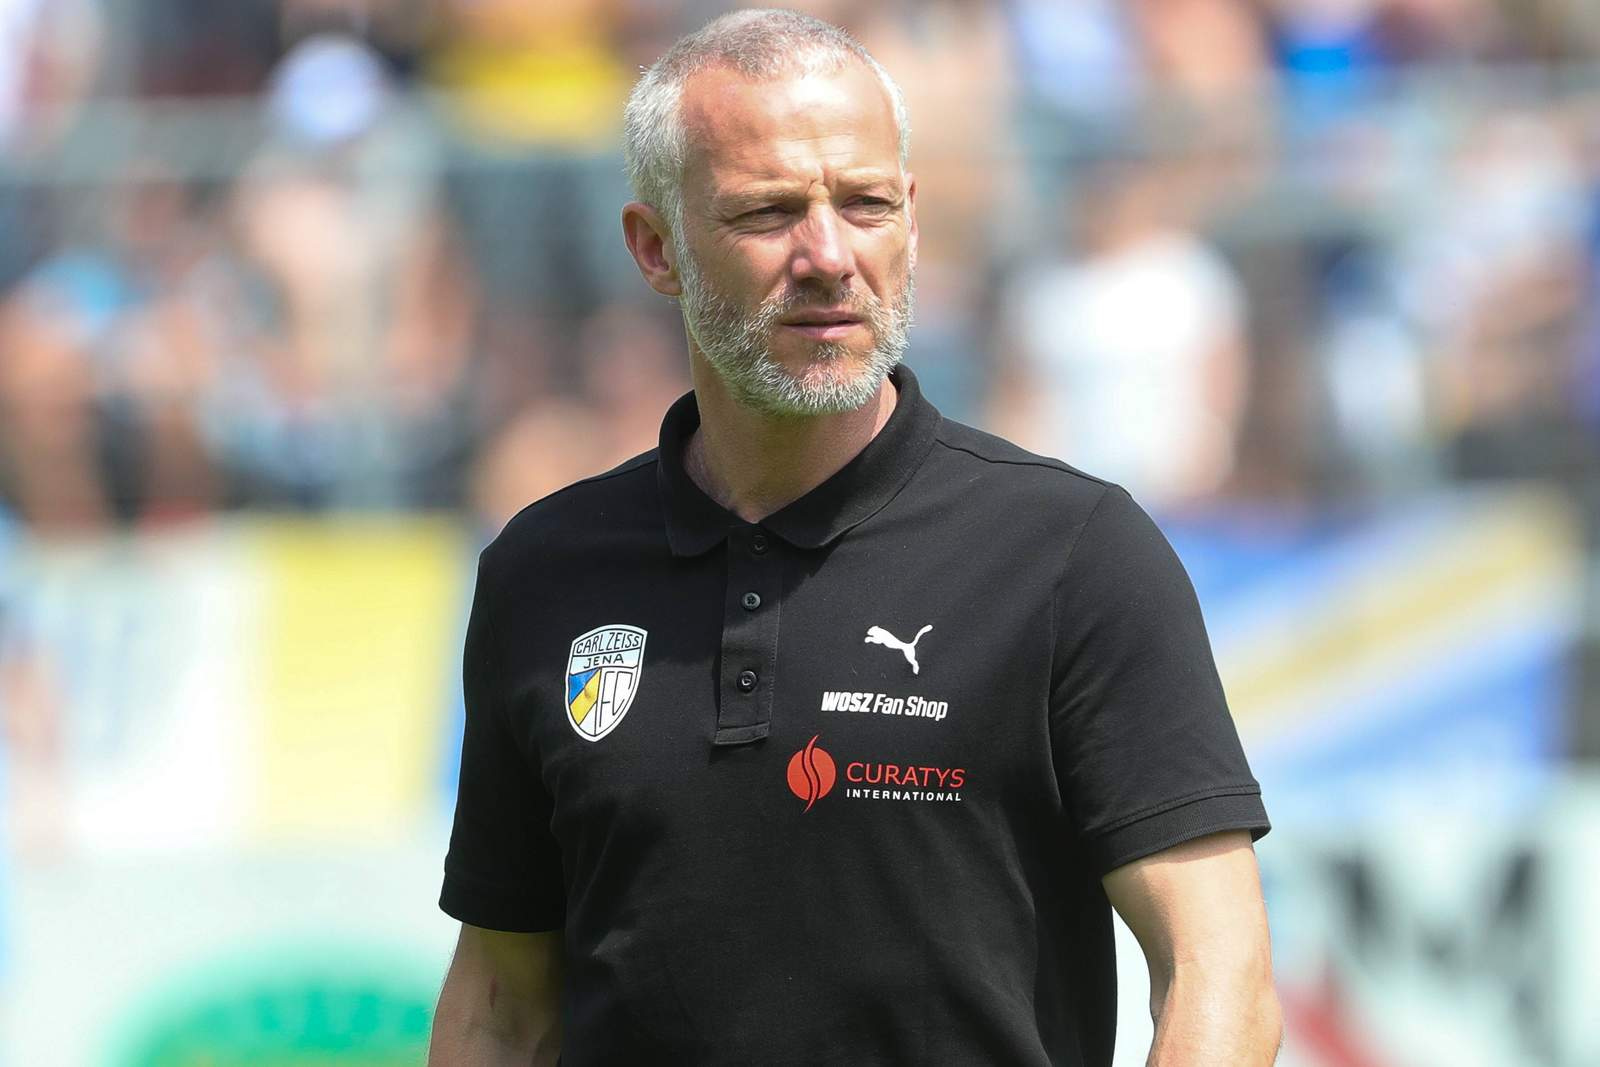 Mark Zimmermann vom FC Carl Zeiss Jena